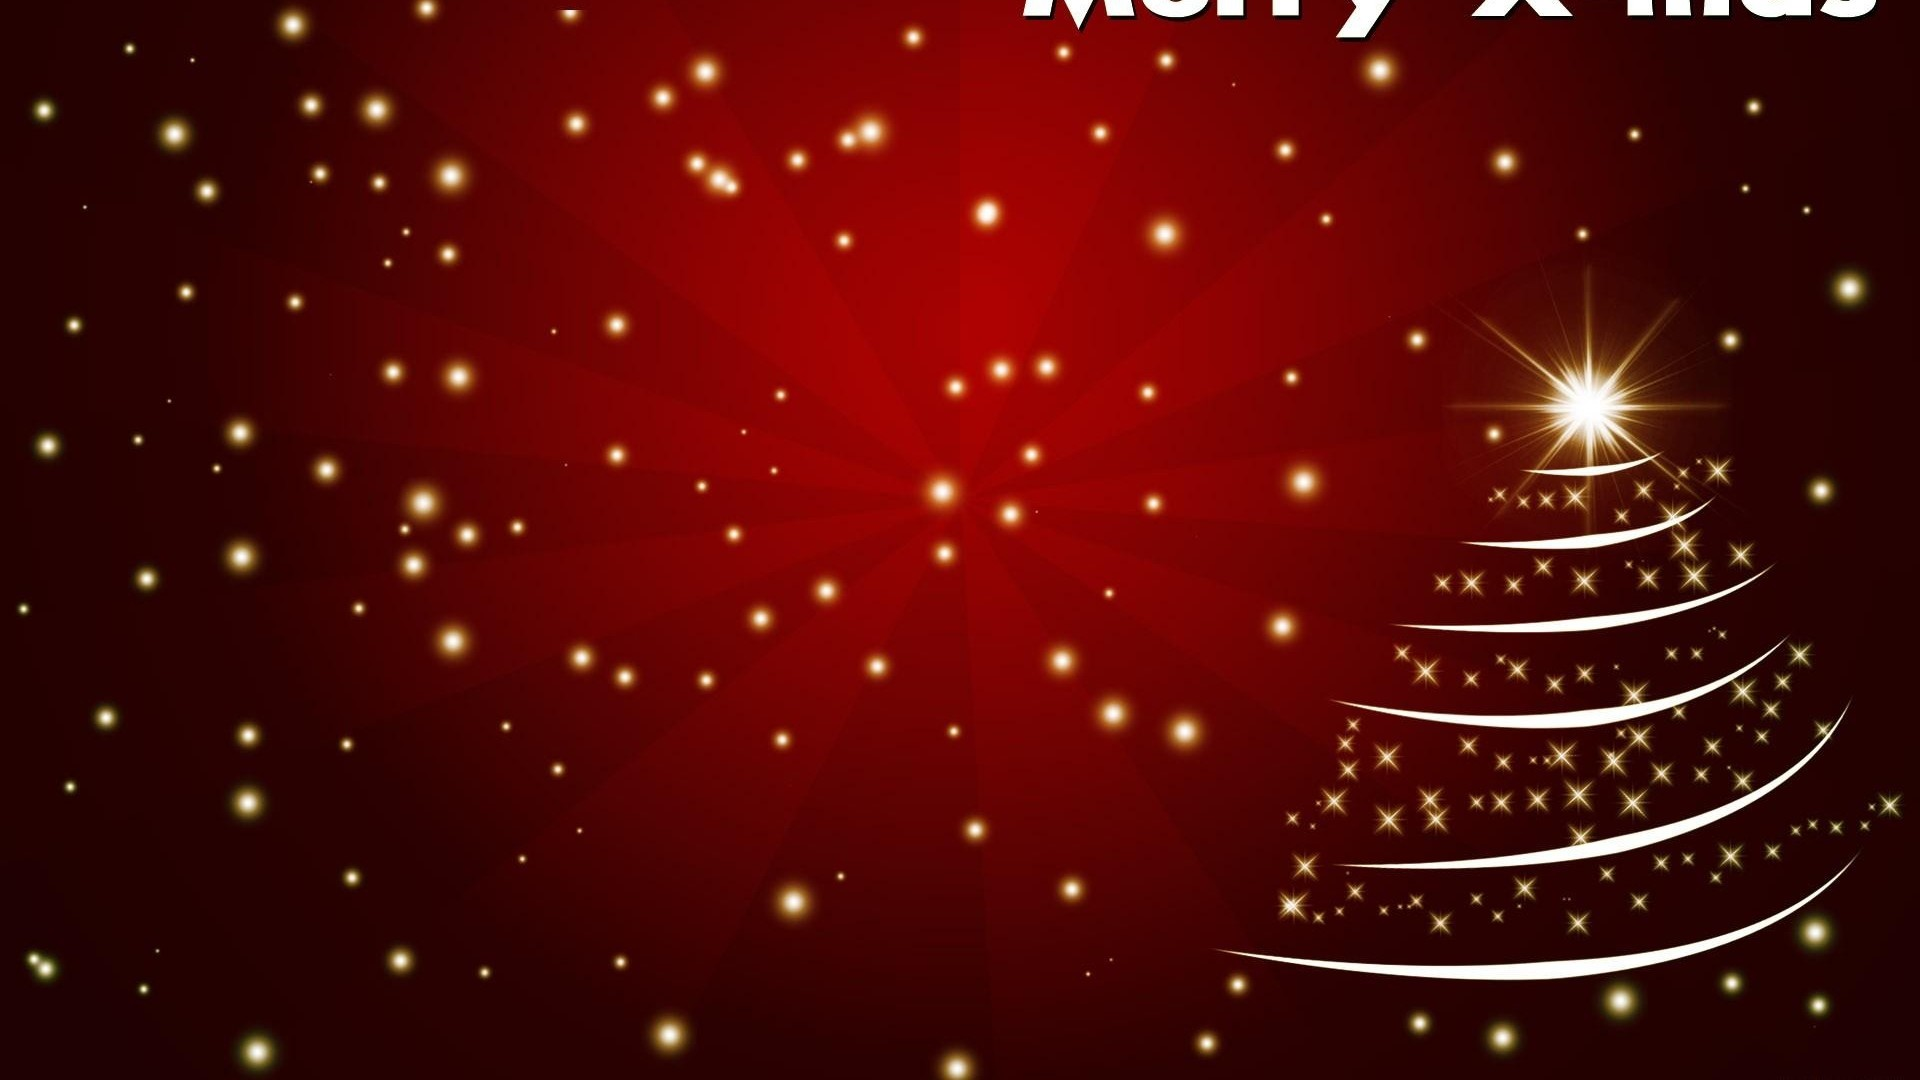 … Background Full HD 1080p. Wallpaper christmas tree, stars,  backgrounds, lettering, wishes, holiday, christmas